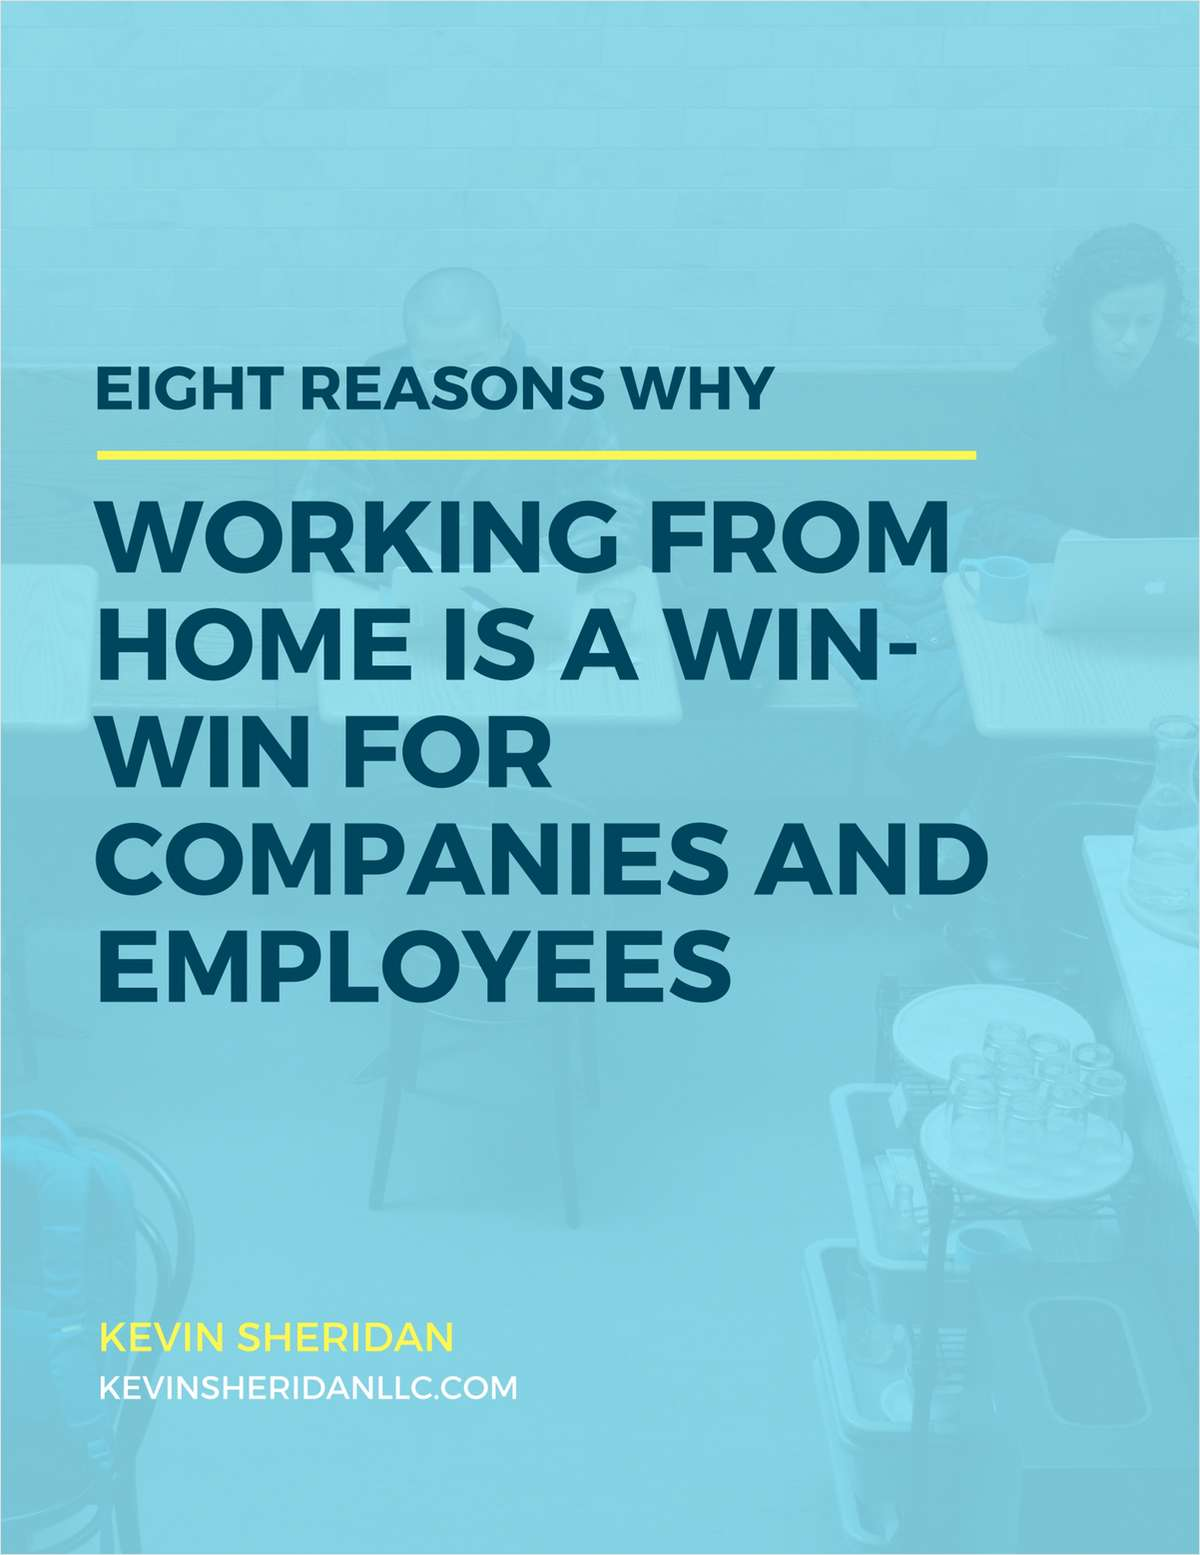 Eight Reasons Why Working from Home is a Win-Win for Companies and Employees